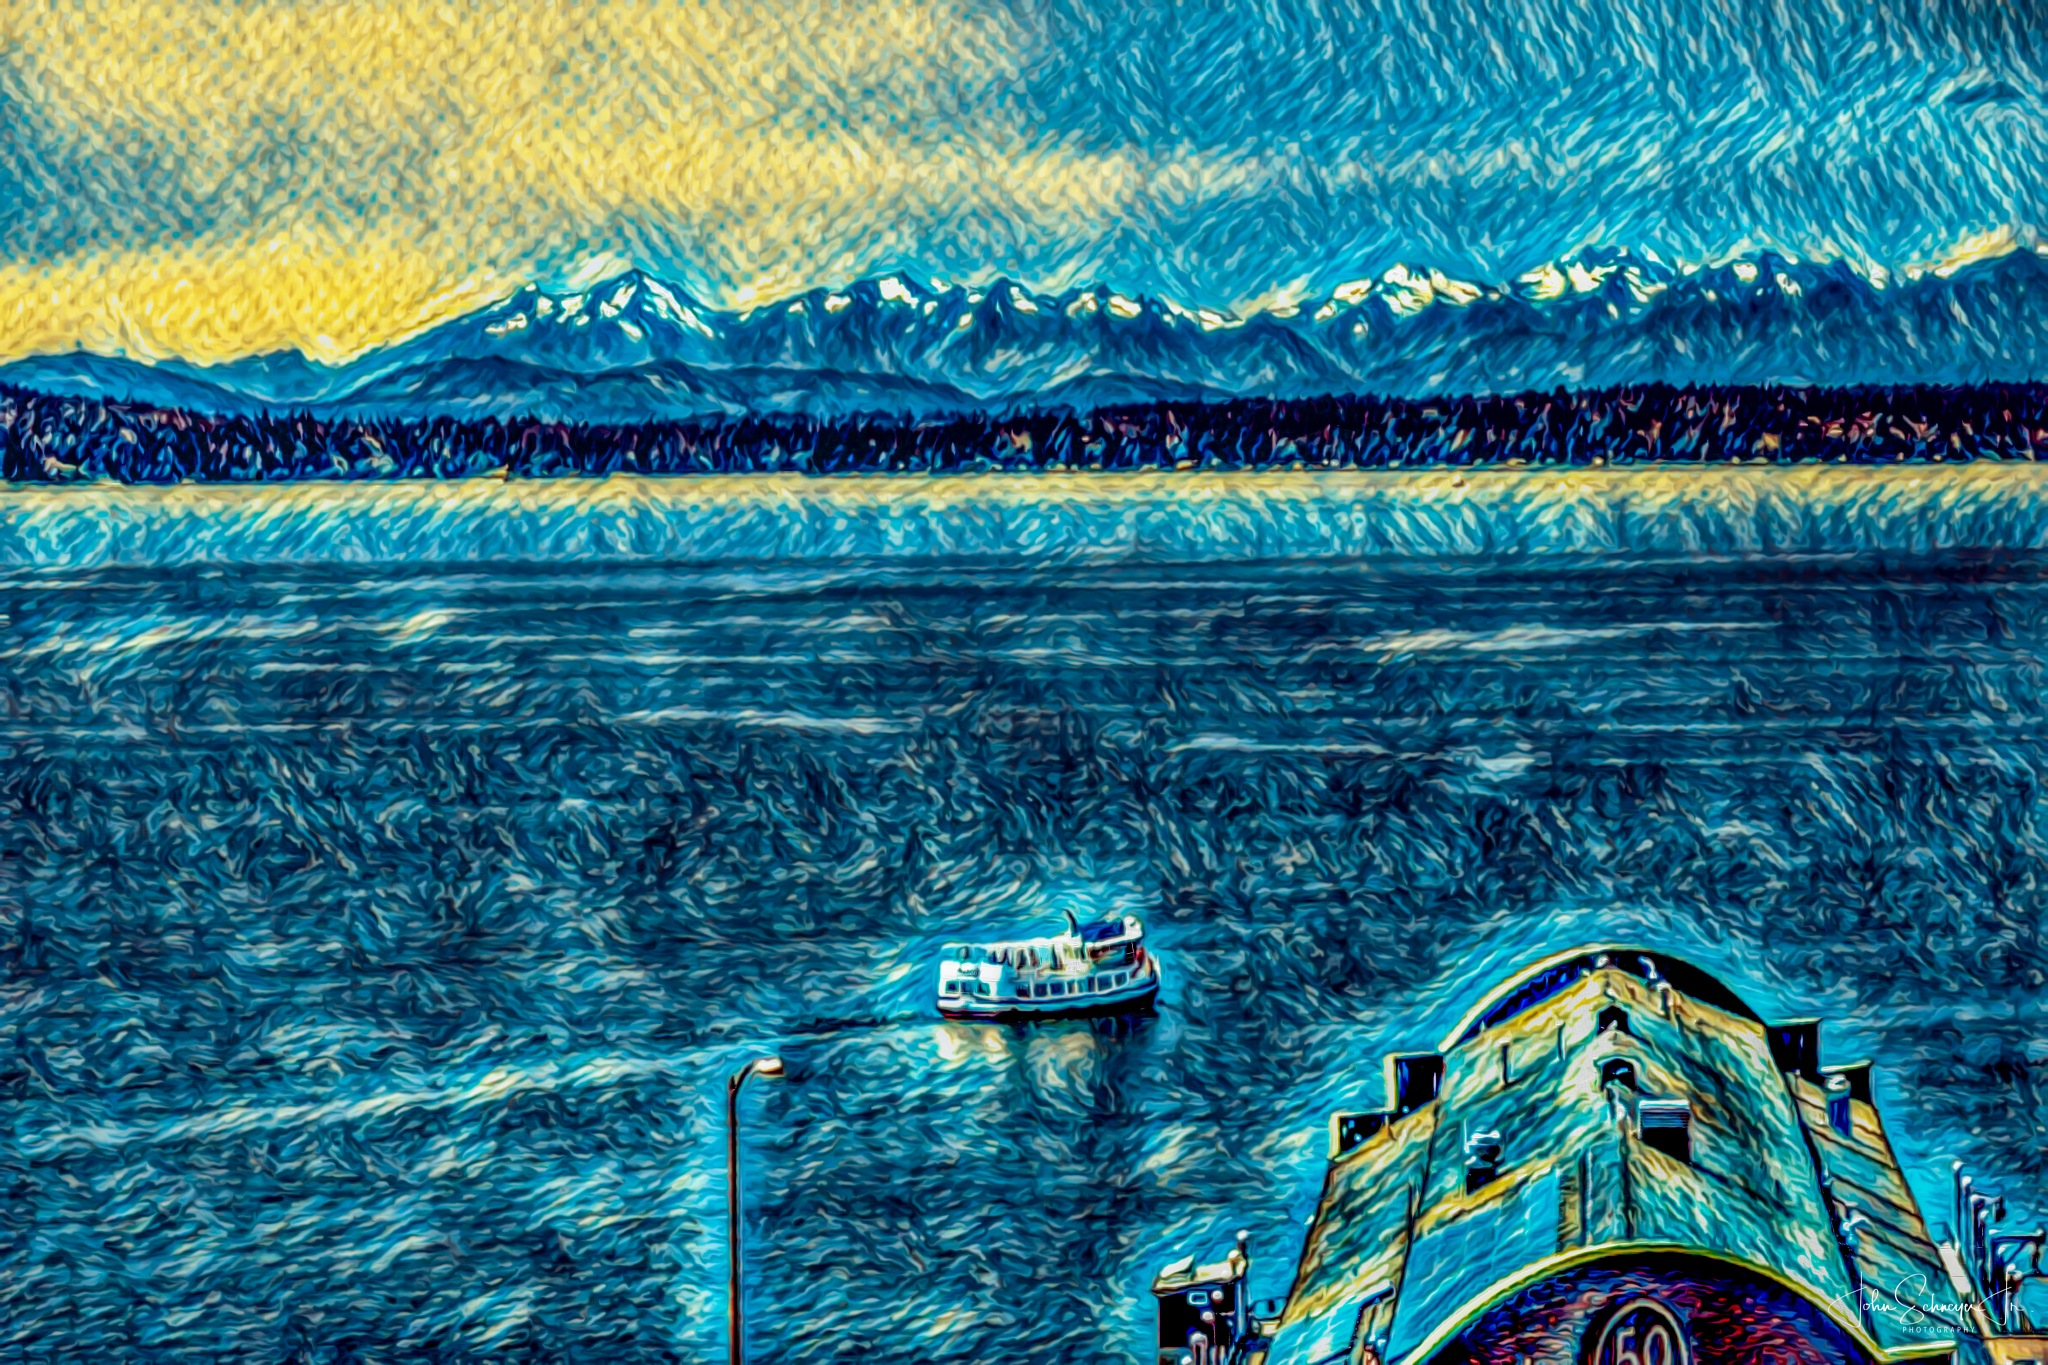 Sailing to the Mountains by John Schneyer